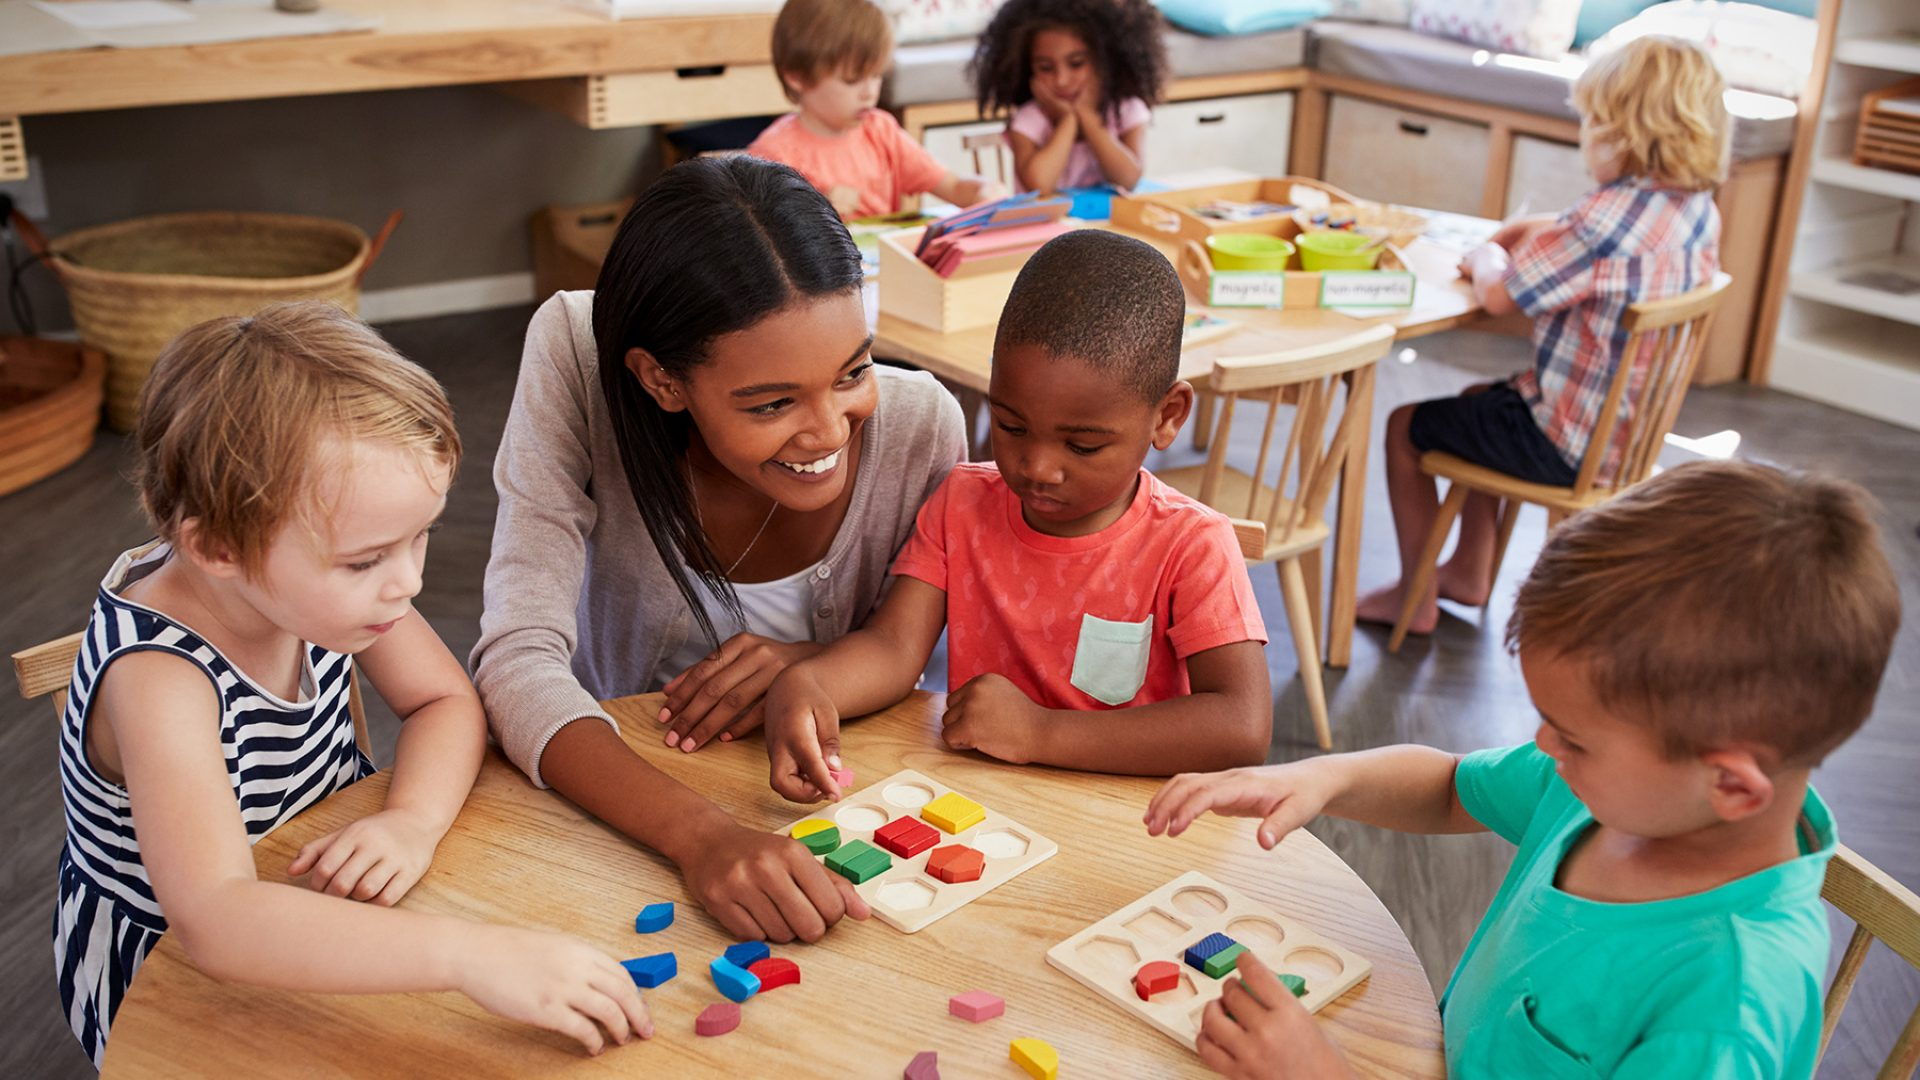 A Guide To German Preschool And Daycare